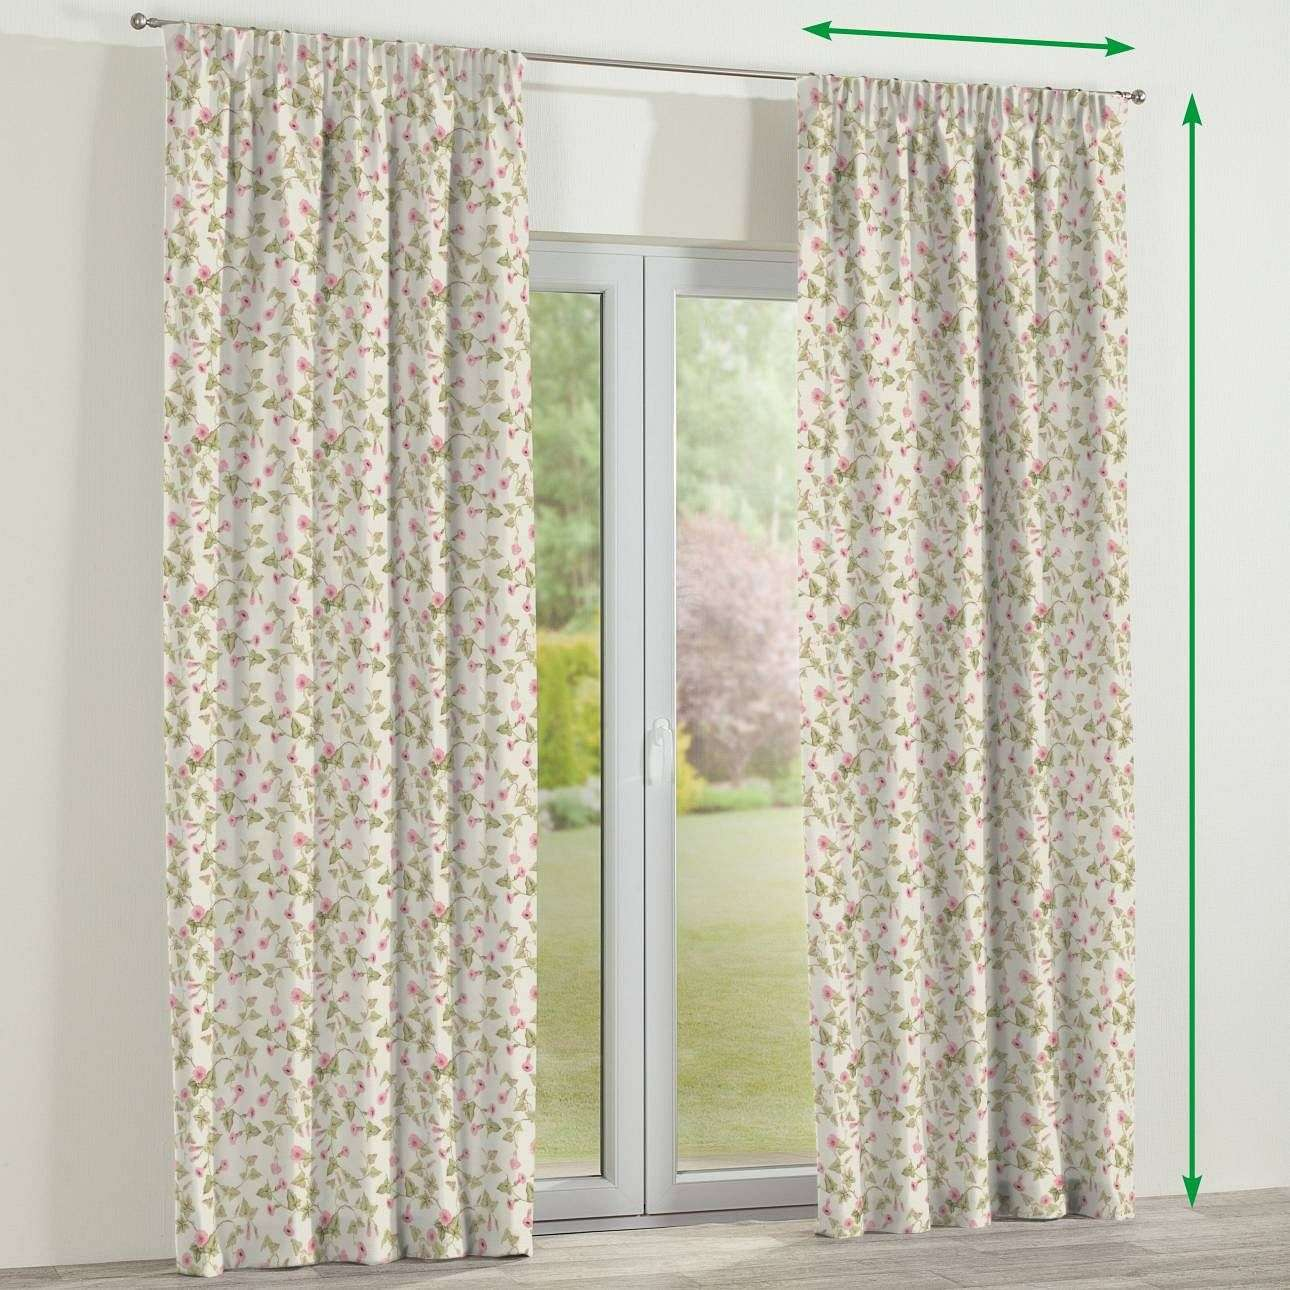 Pencil pleat lined curtains in collection Mirella, fabric: 140-41